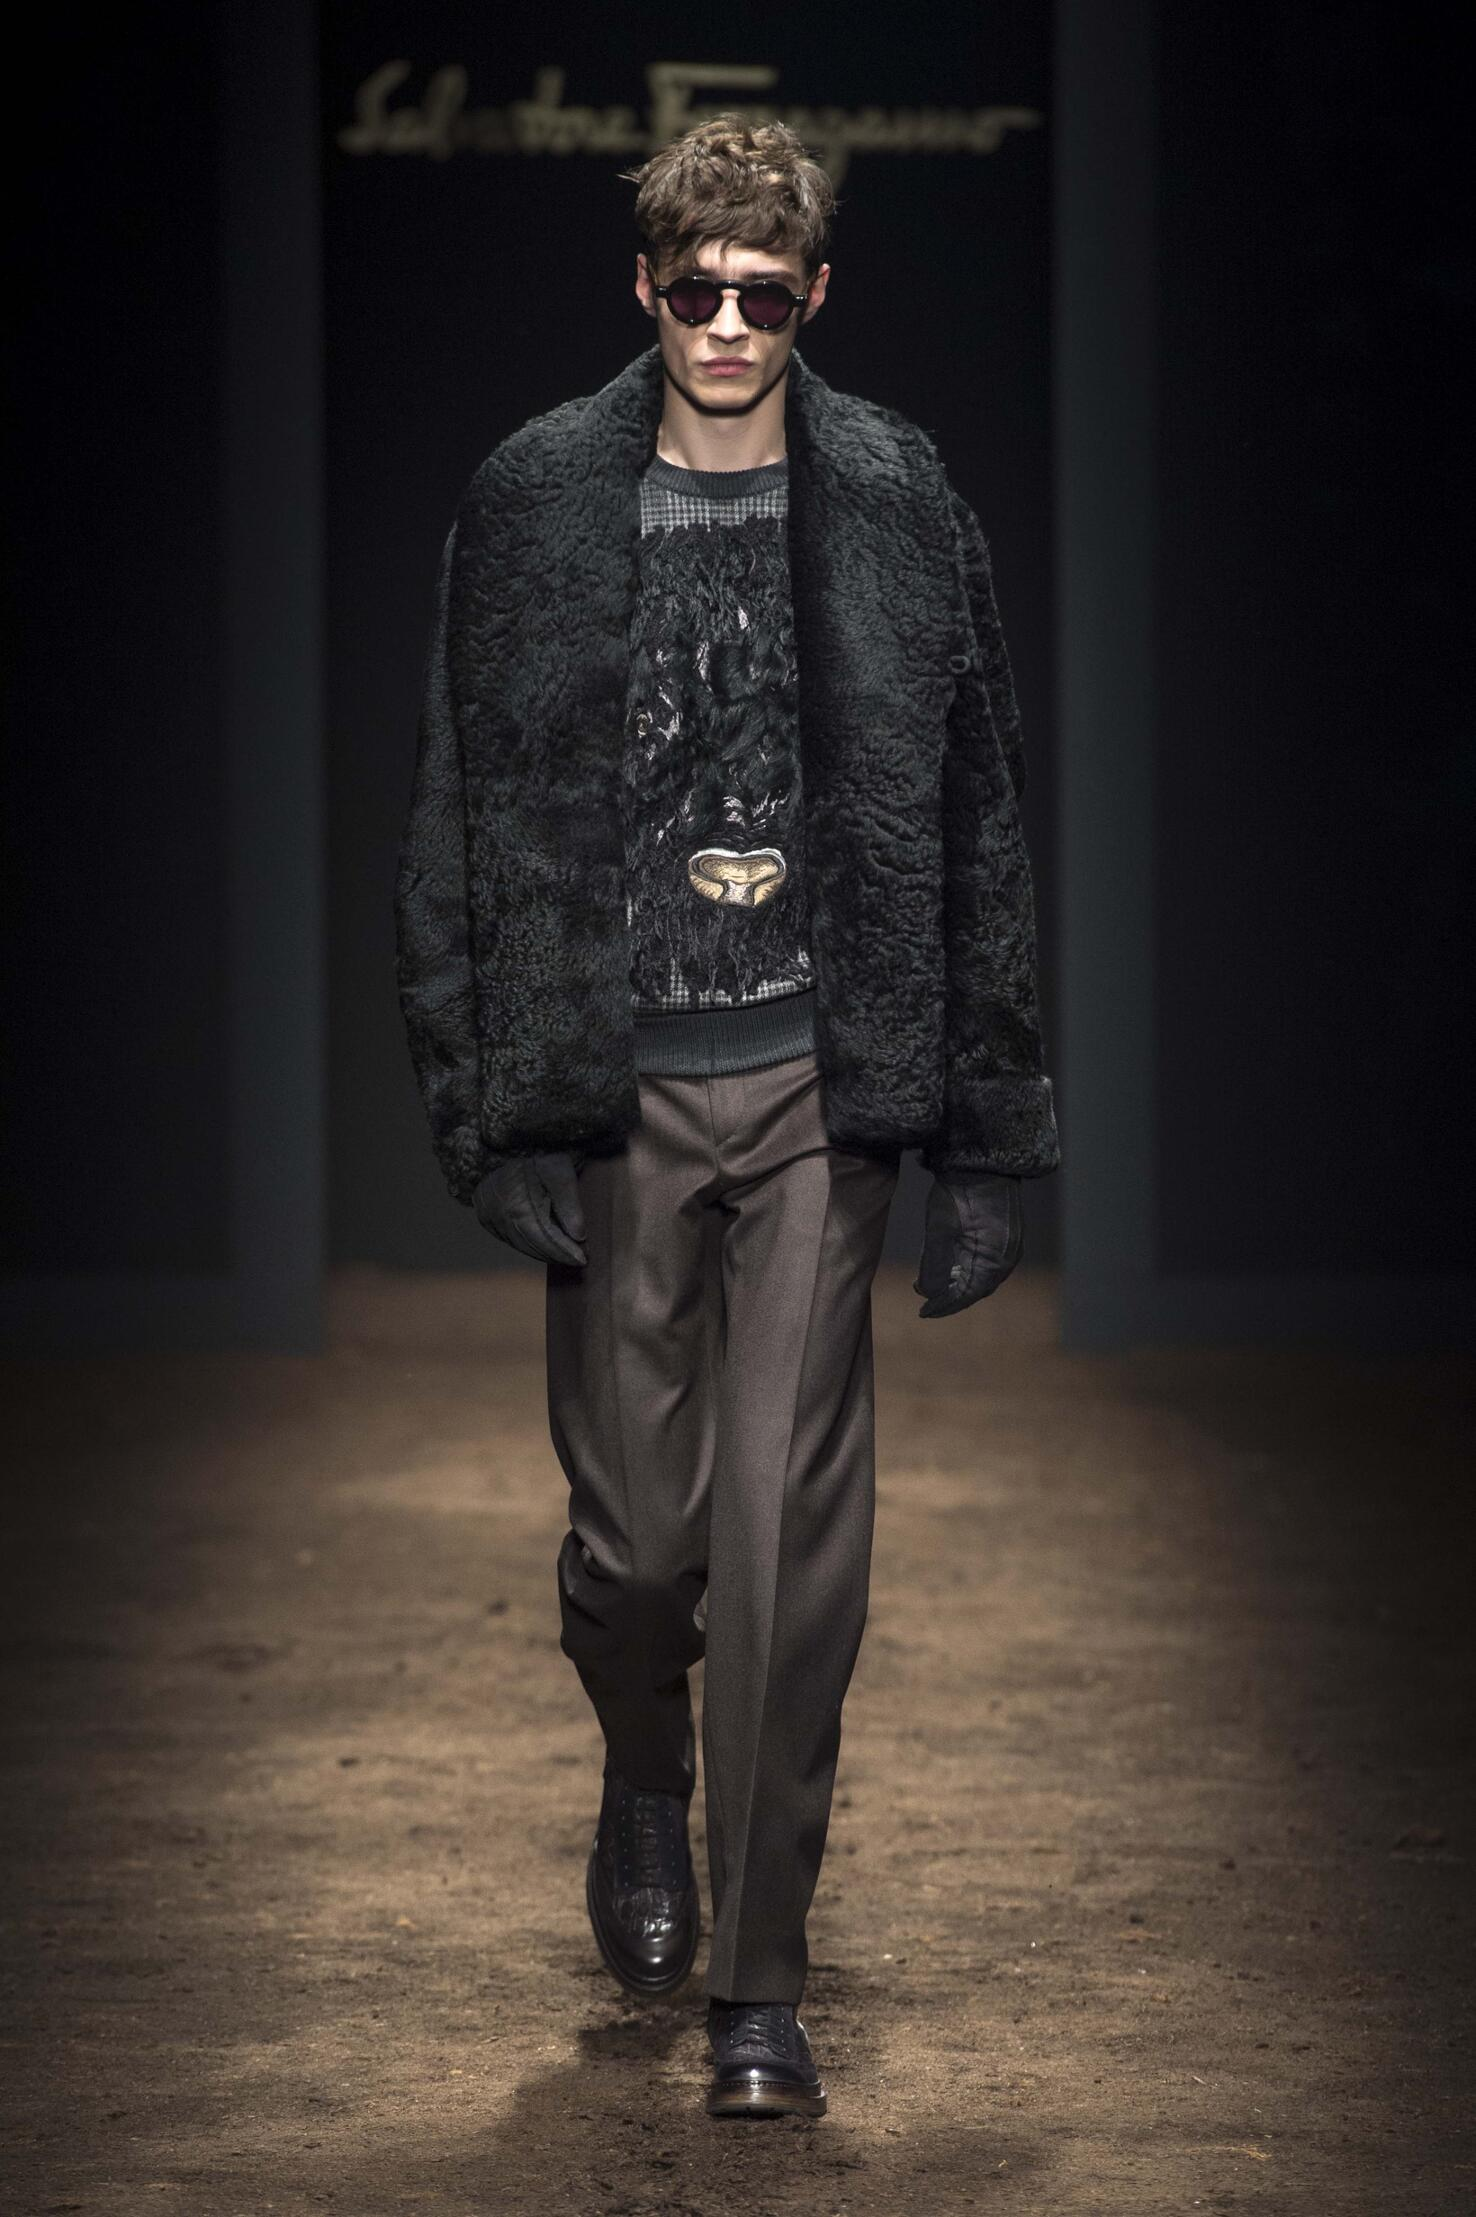 Runway Salvatore Ferragamo Fall Winter 2015 16 Men's Collection Milan Fashion Week